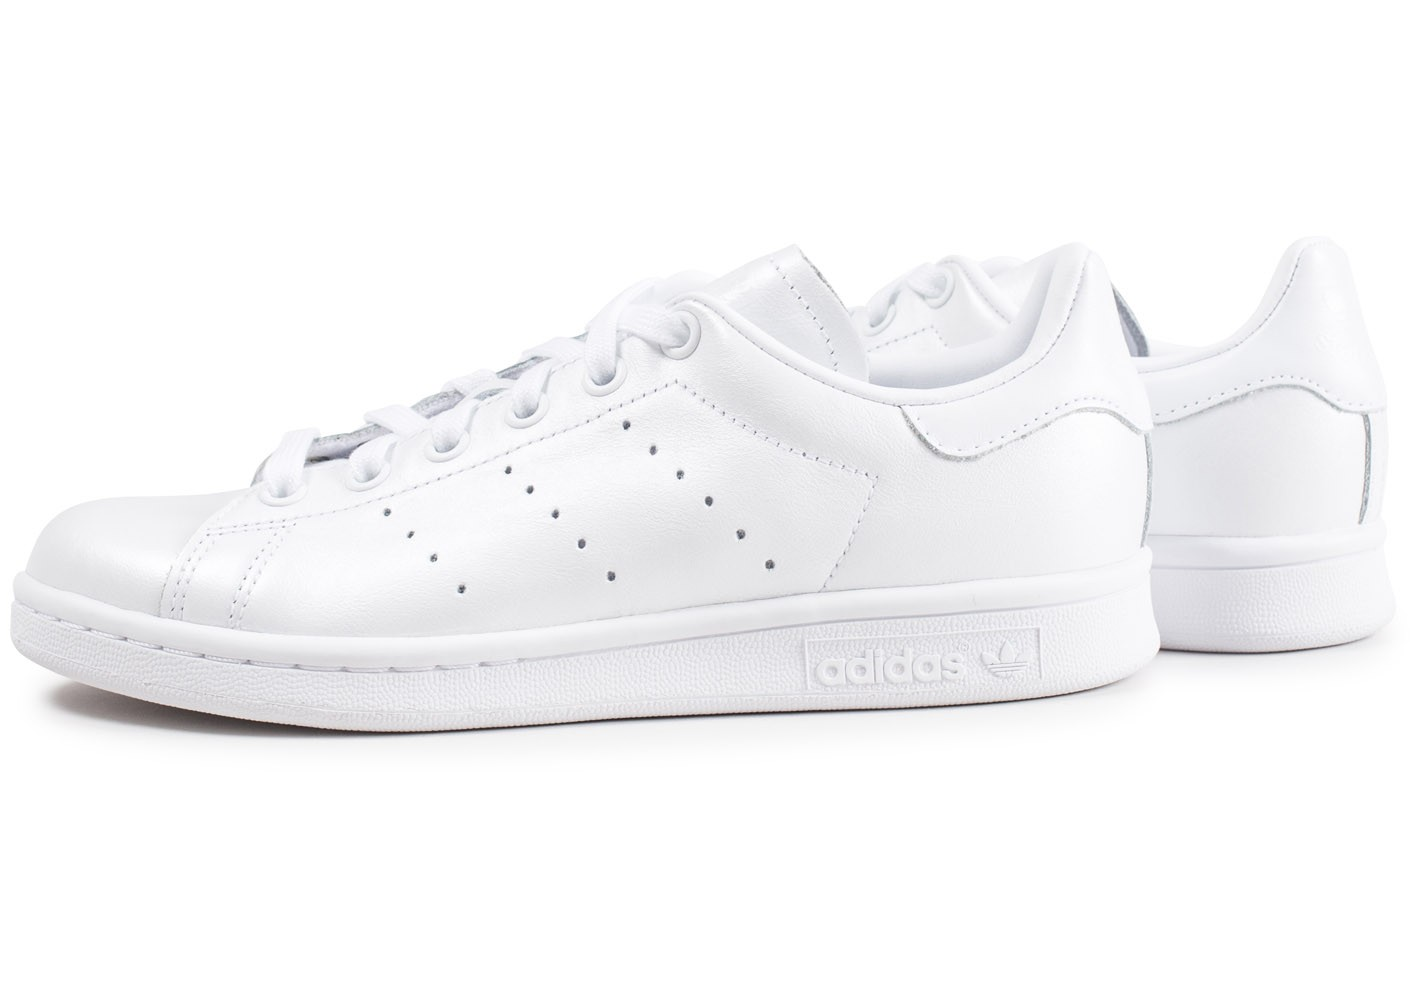 adidas Stan Smith triple blanc shinny femme Chaussures